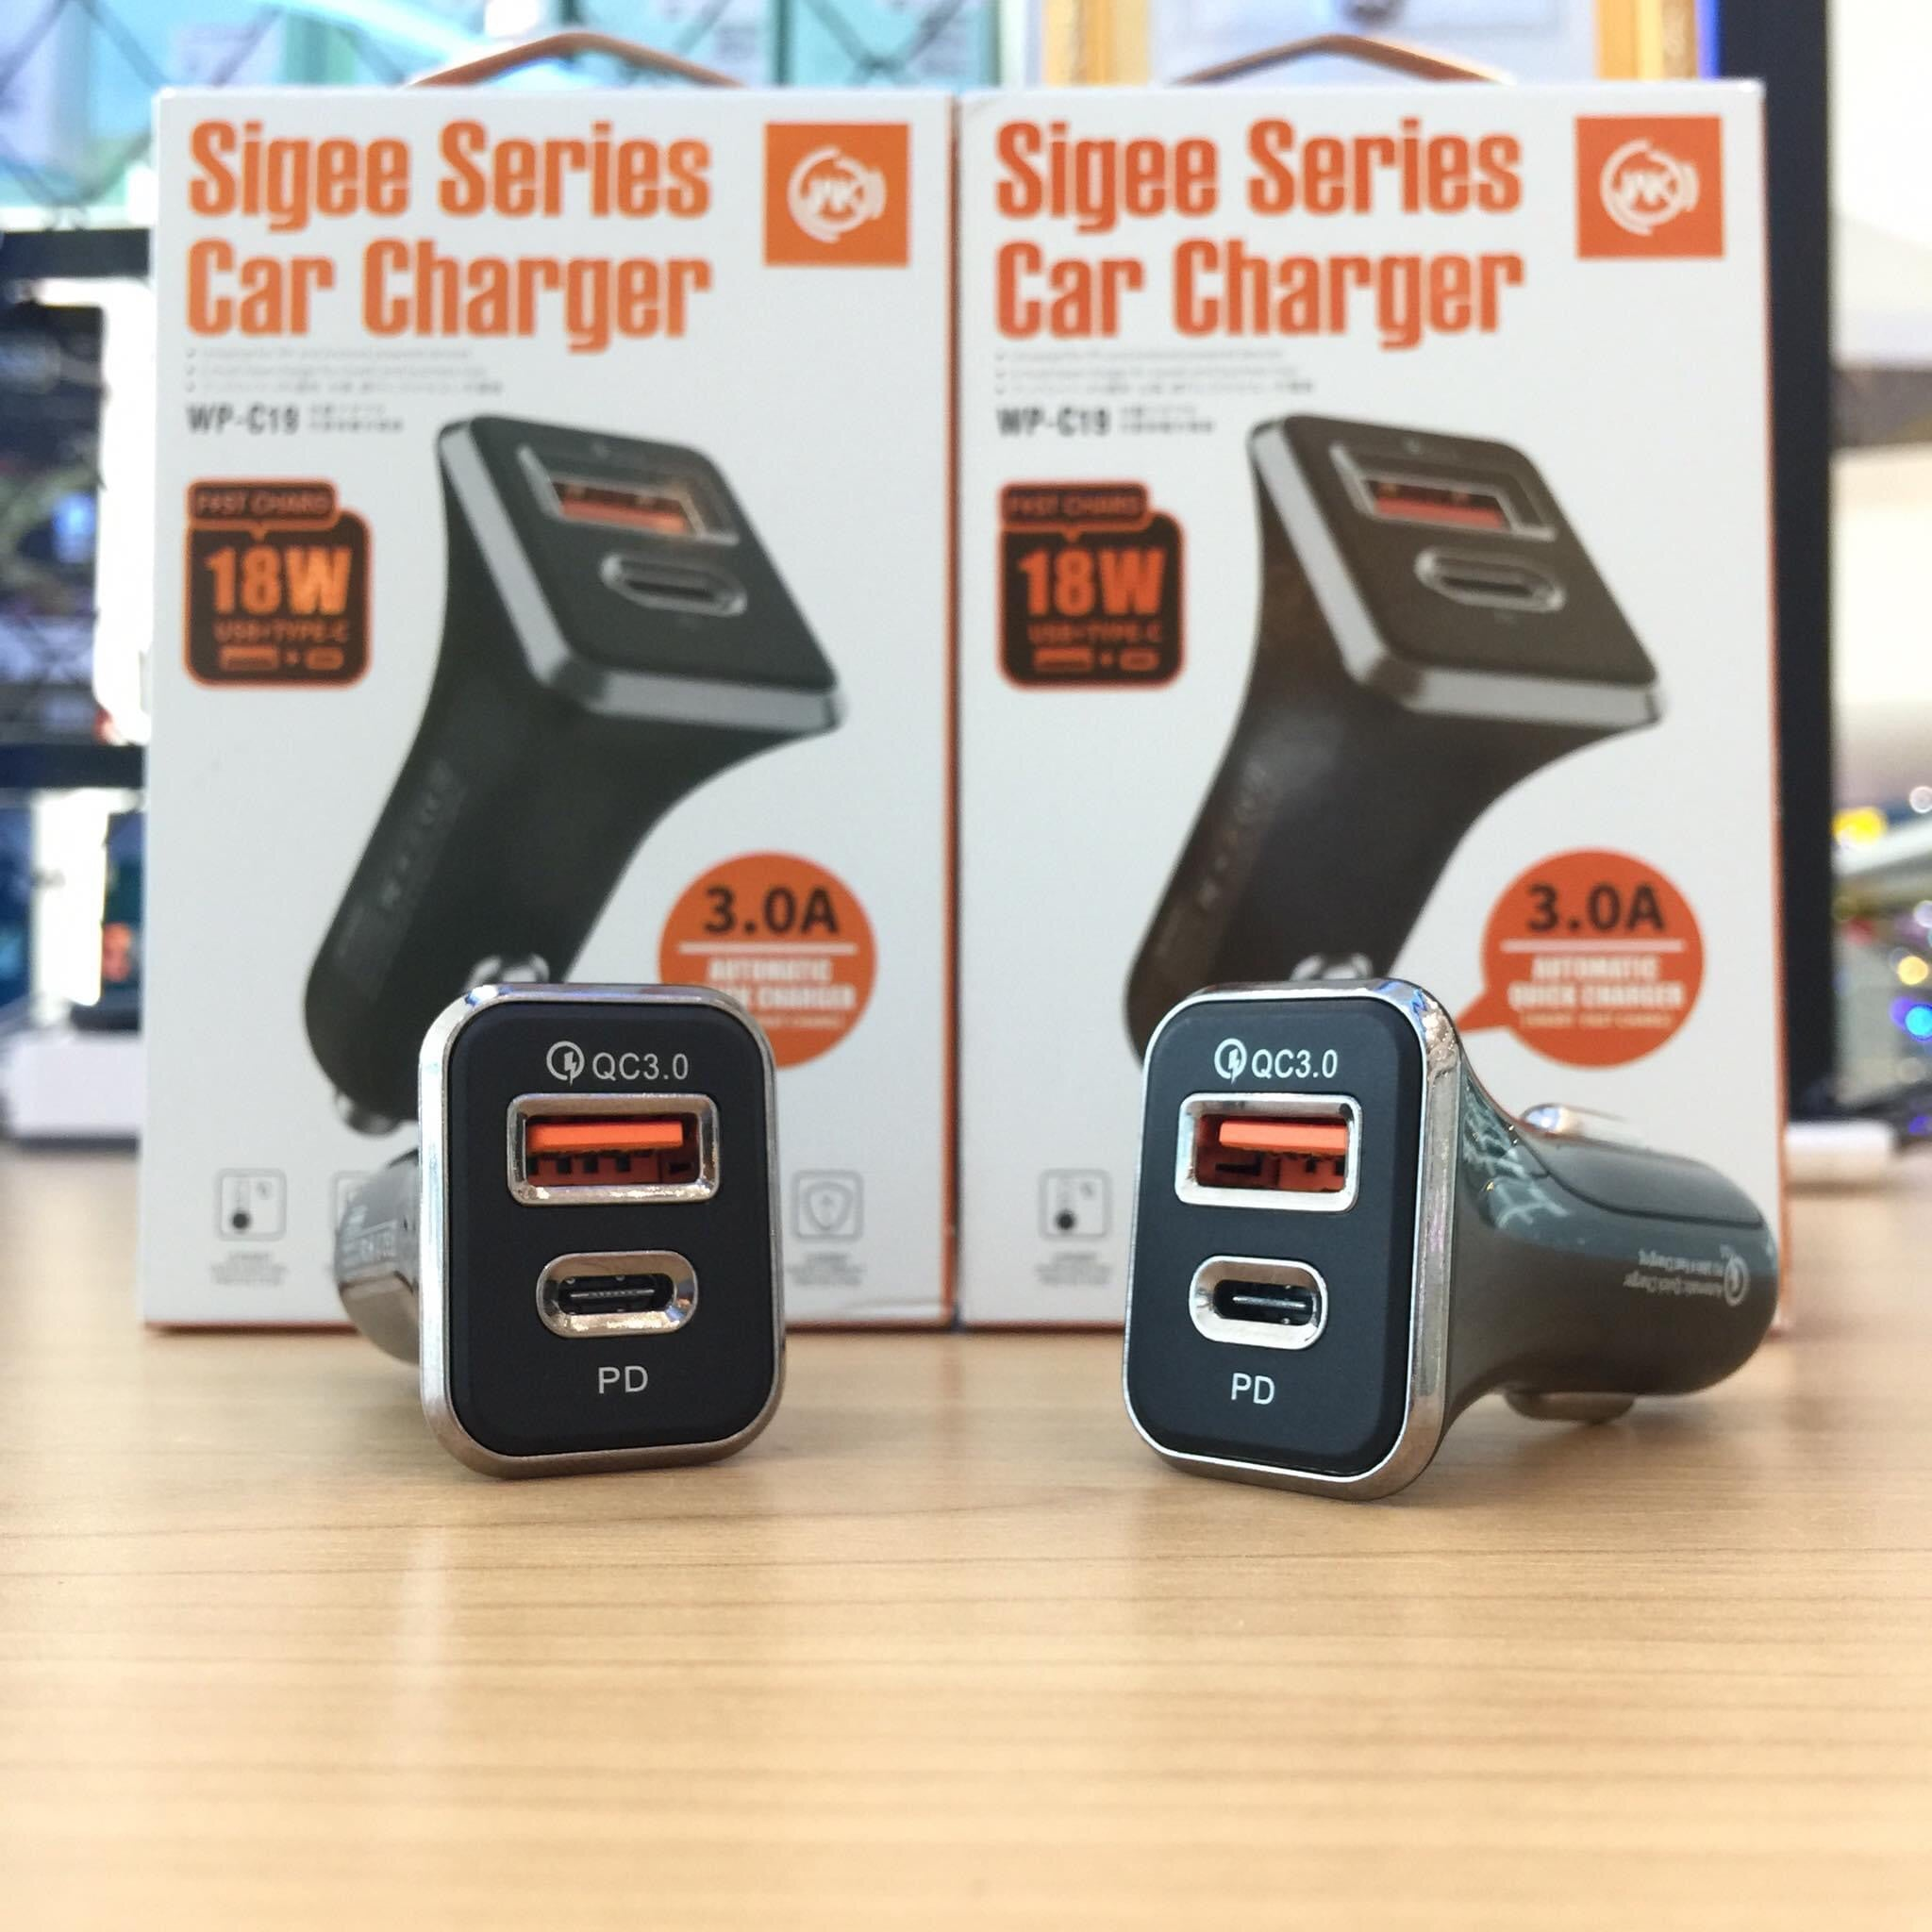 WP-C19 (QC3.0+PD)18W Max Sigee Car Charger